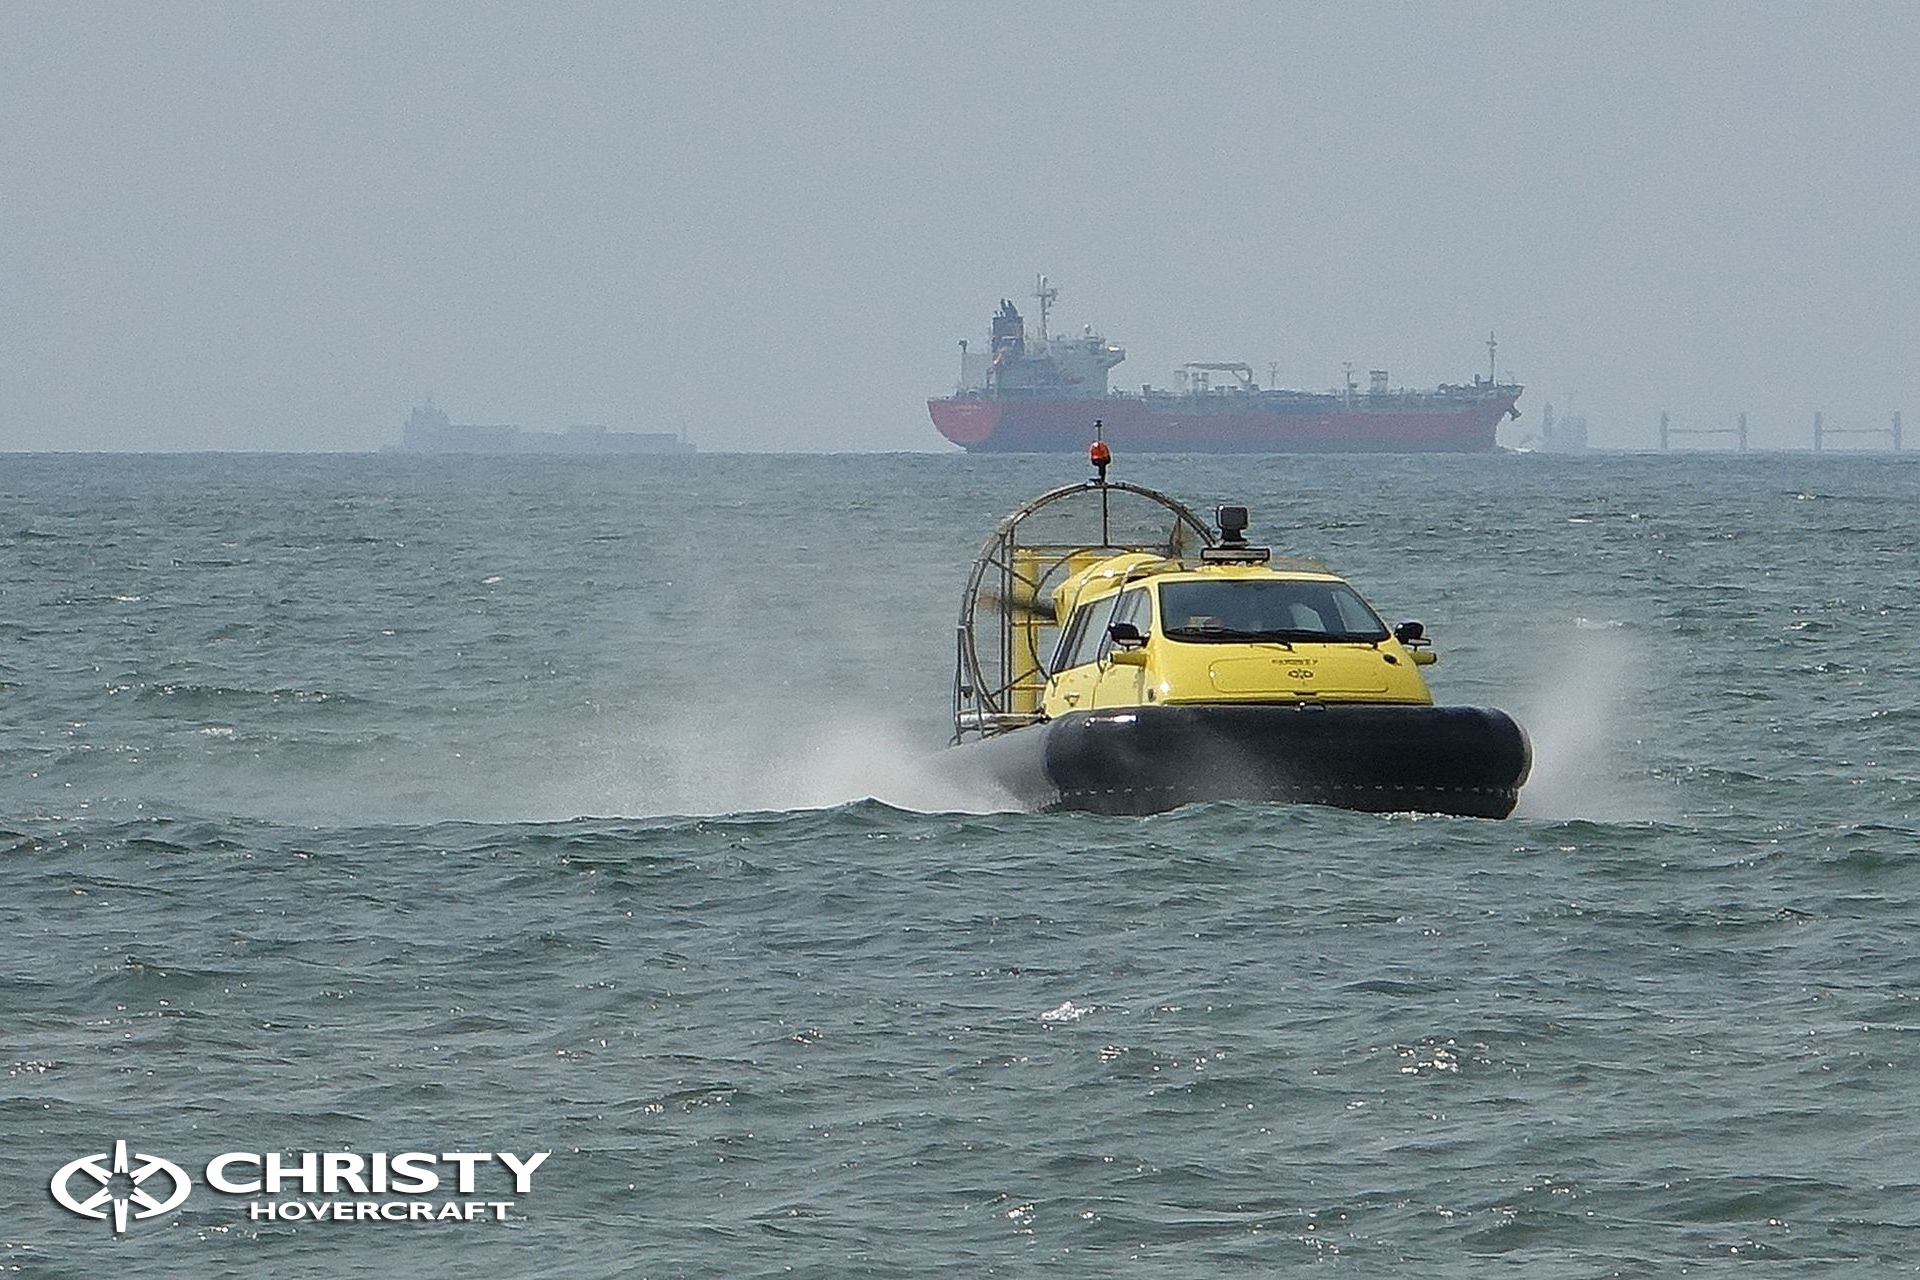 hovercraft-christy-5_7series-25.jpg | фото №32